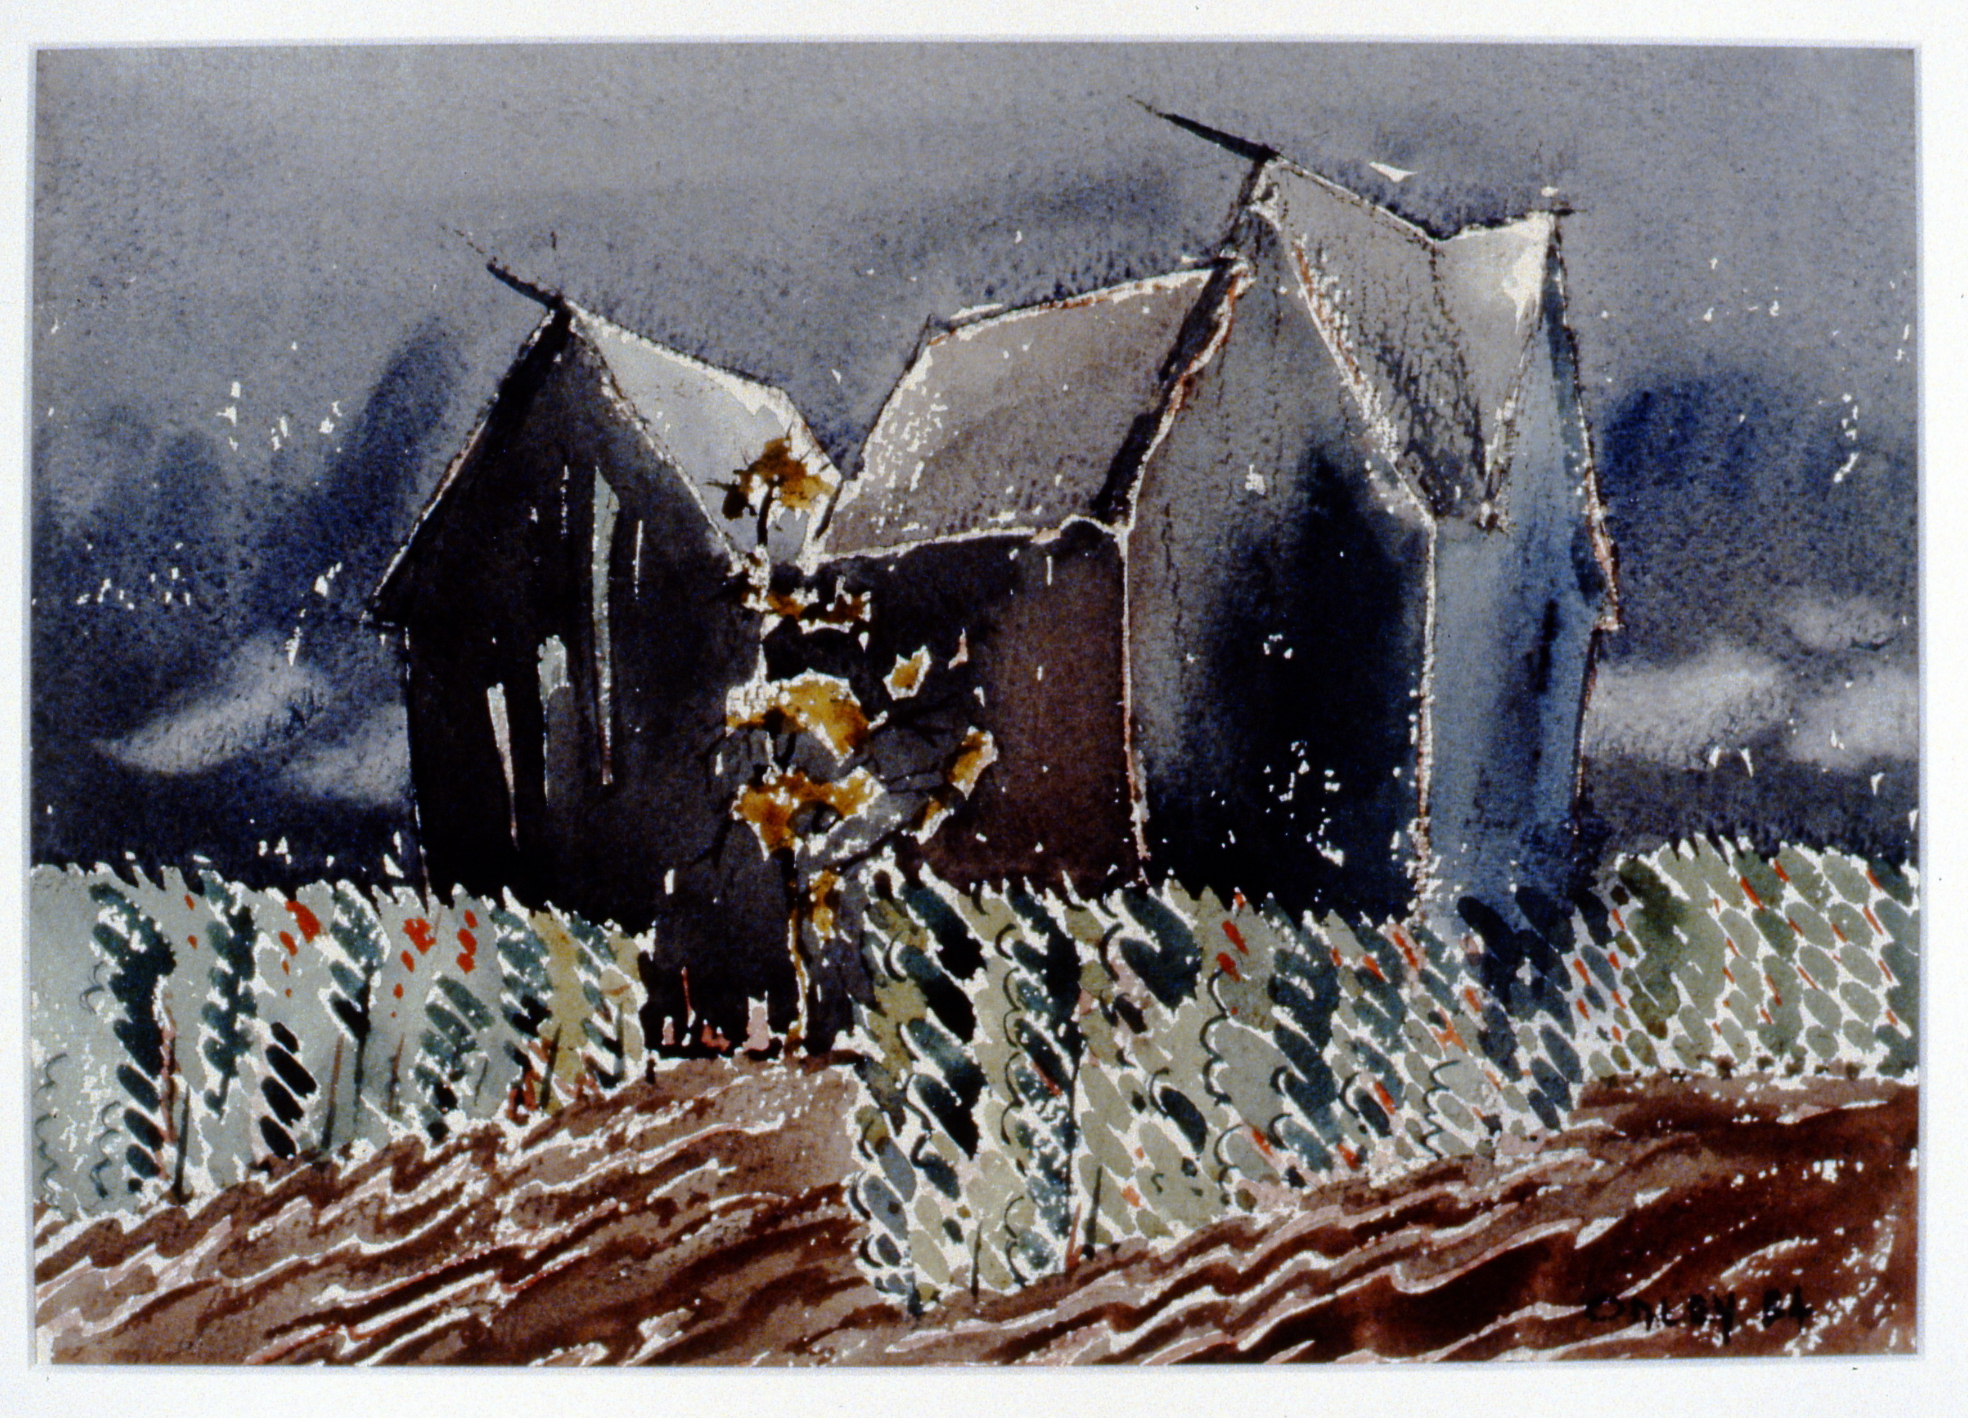 Untitled (Cainsville/Ontario), 1954, Toni Onley, watercolour, 26 cm x 36.9 cm, 2001.04.03. Gift of the Estate of Ethel & Maurice Joslin.